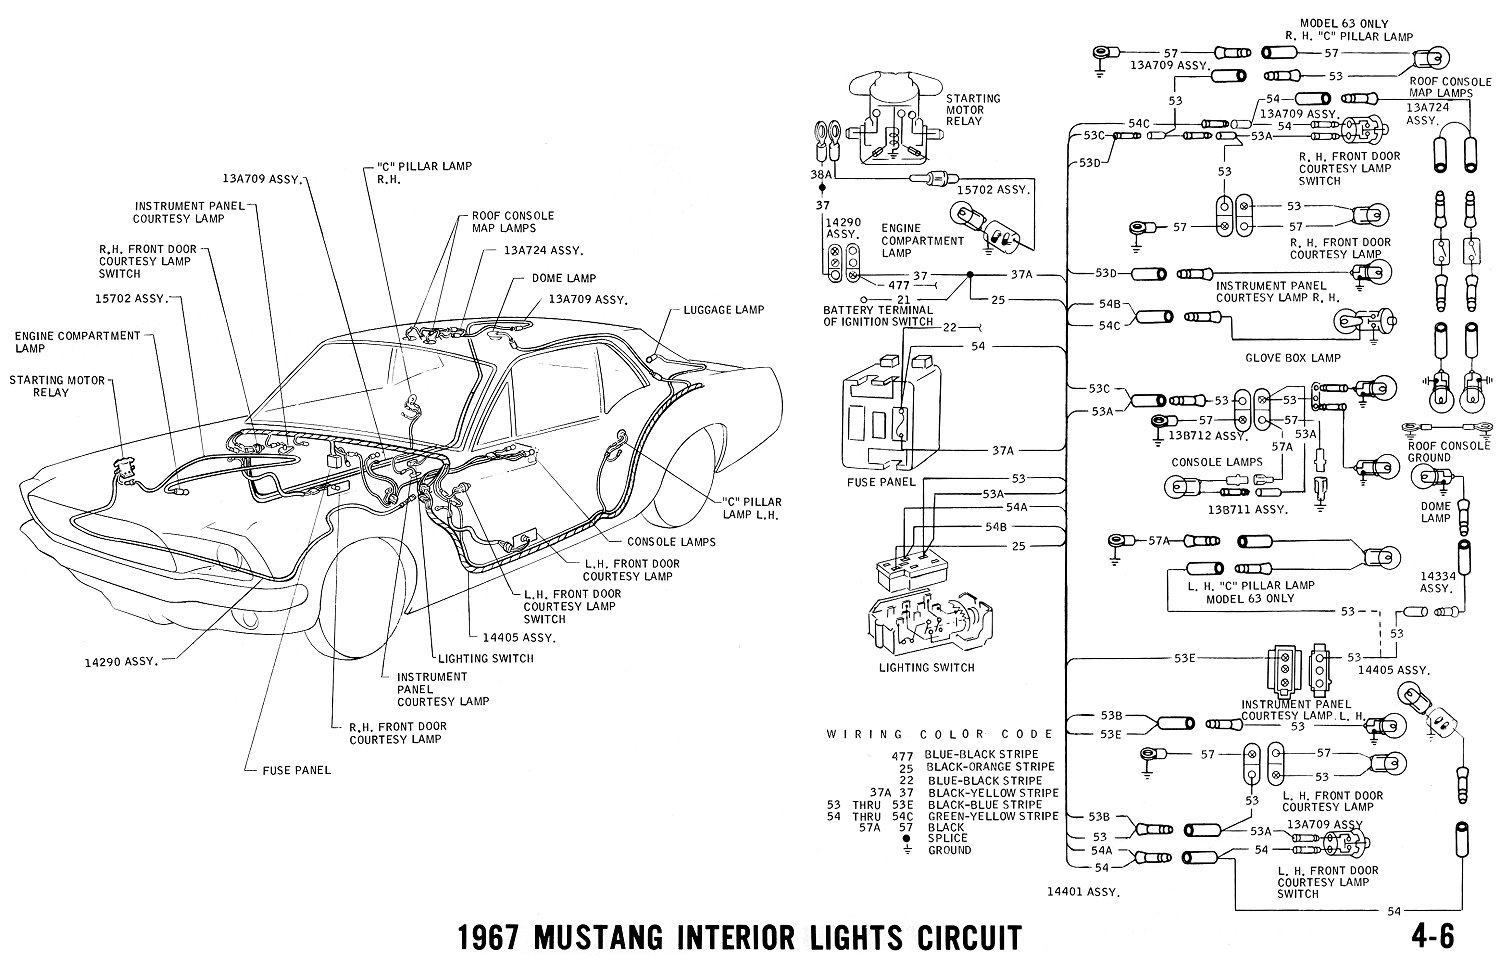 1967 Ford Mustang Wiring Harness Guide And Troubleshooting Of 66 Fairlane Diagrams Regulator Diagram Todays Rh 9 11 12 1813weddingbarn Com Alternator